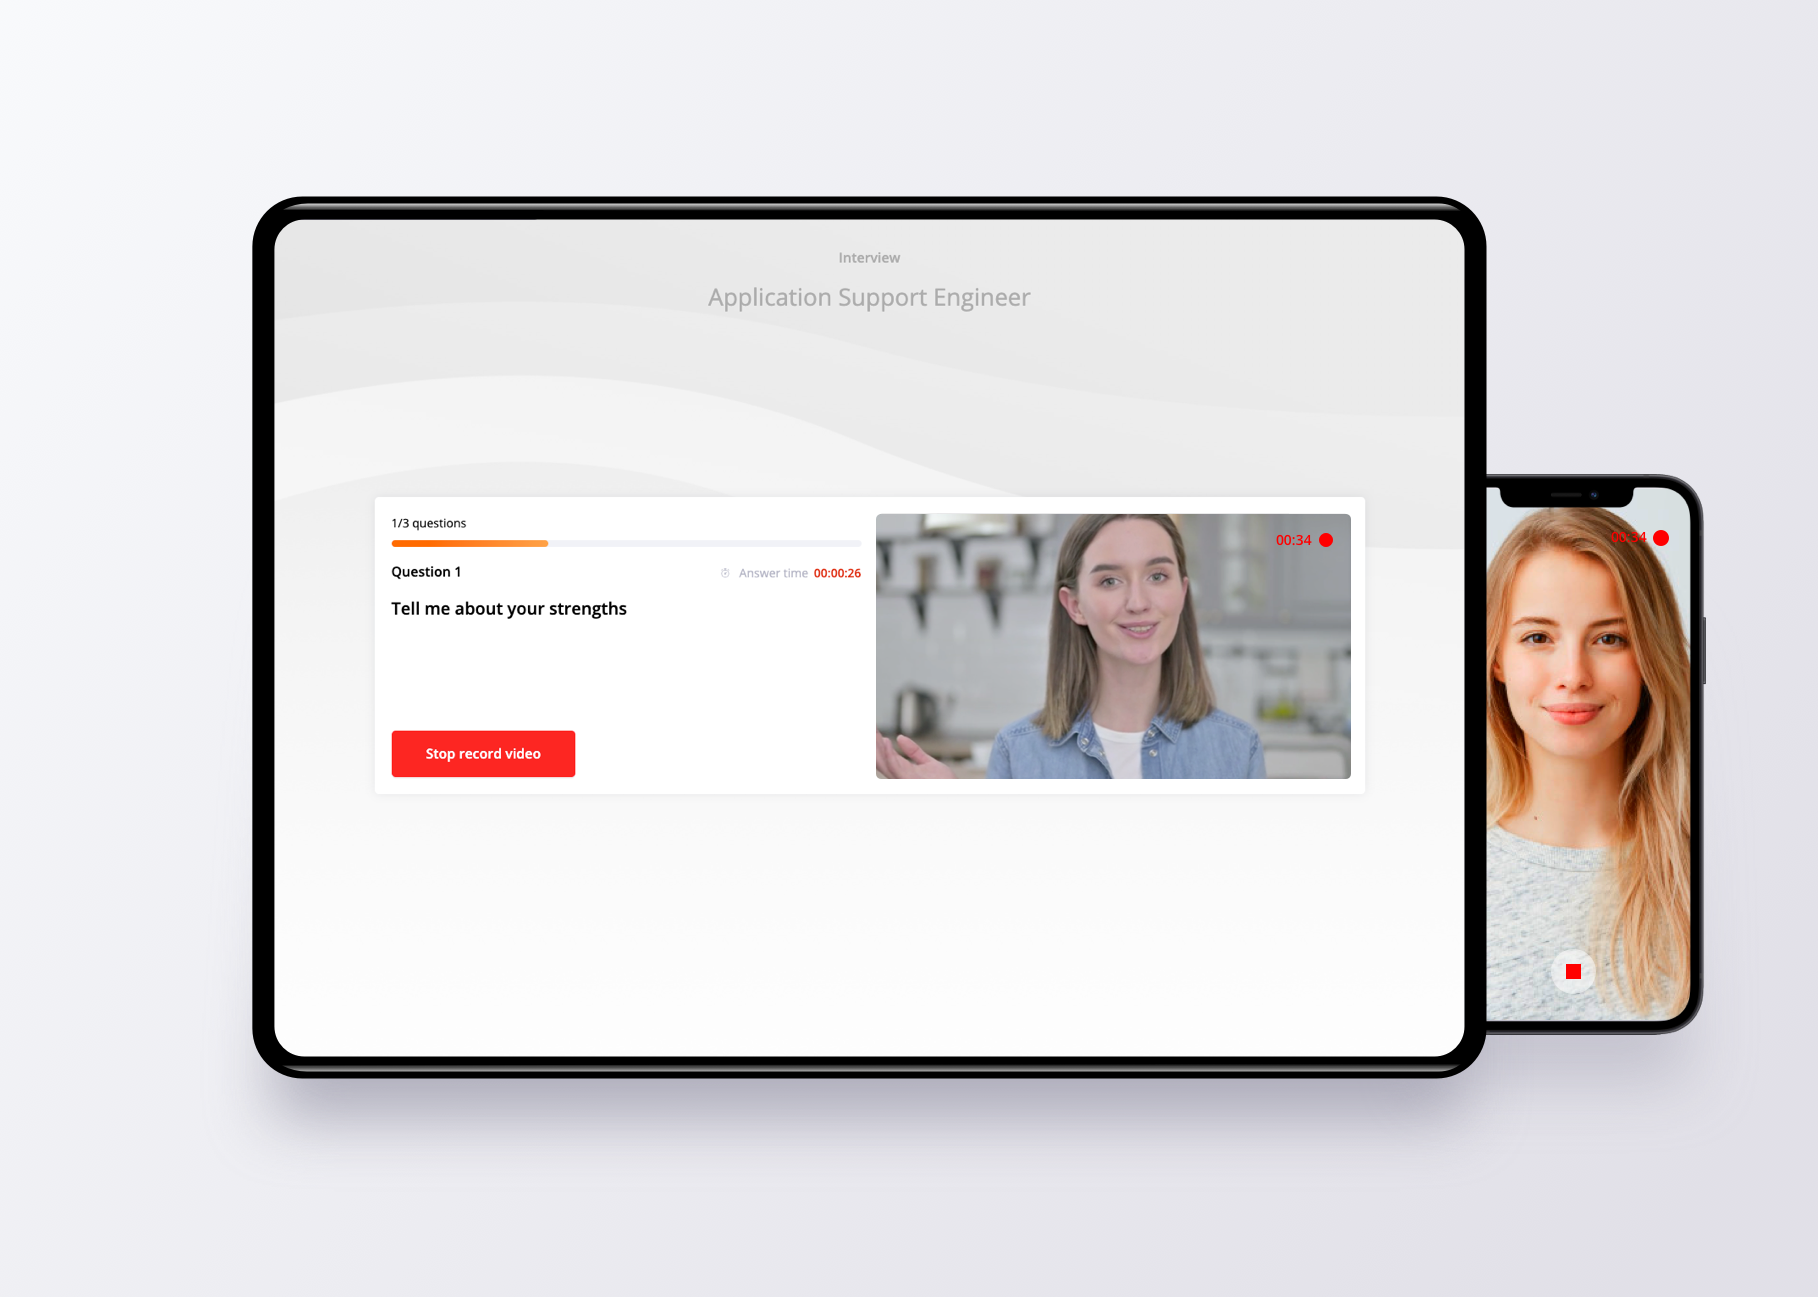 Live and on-demand video interviewing